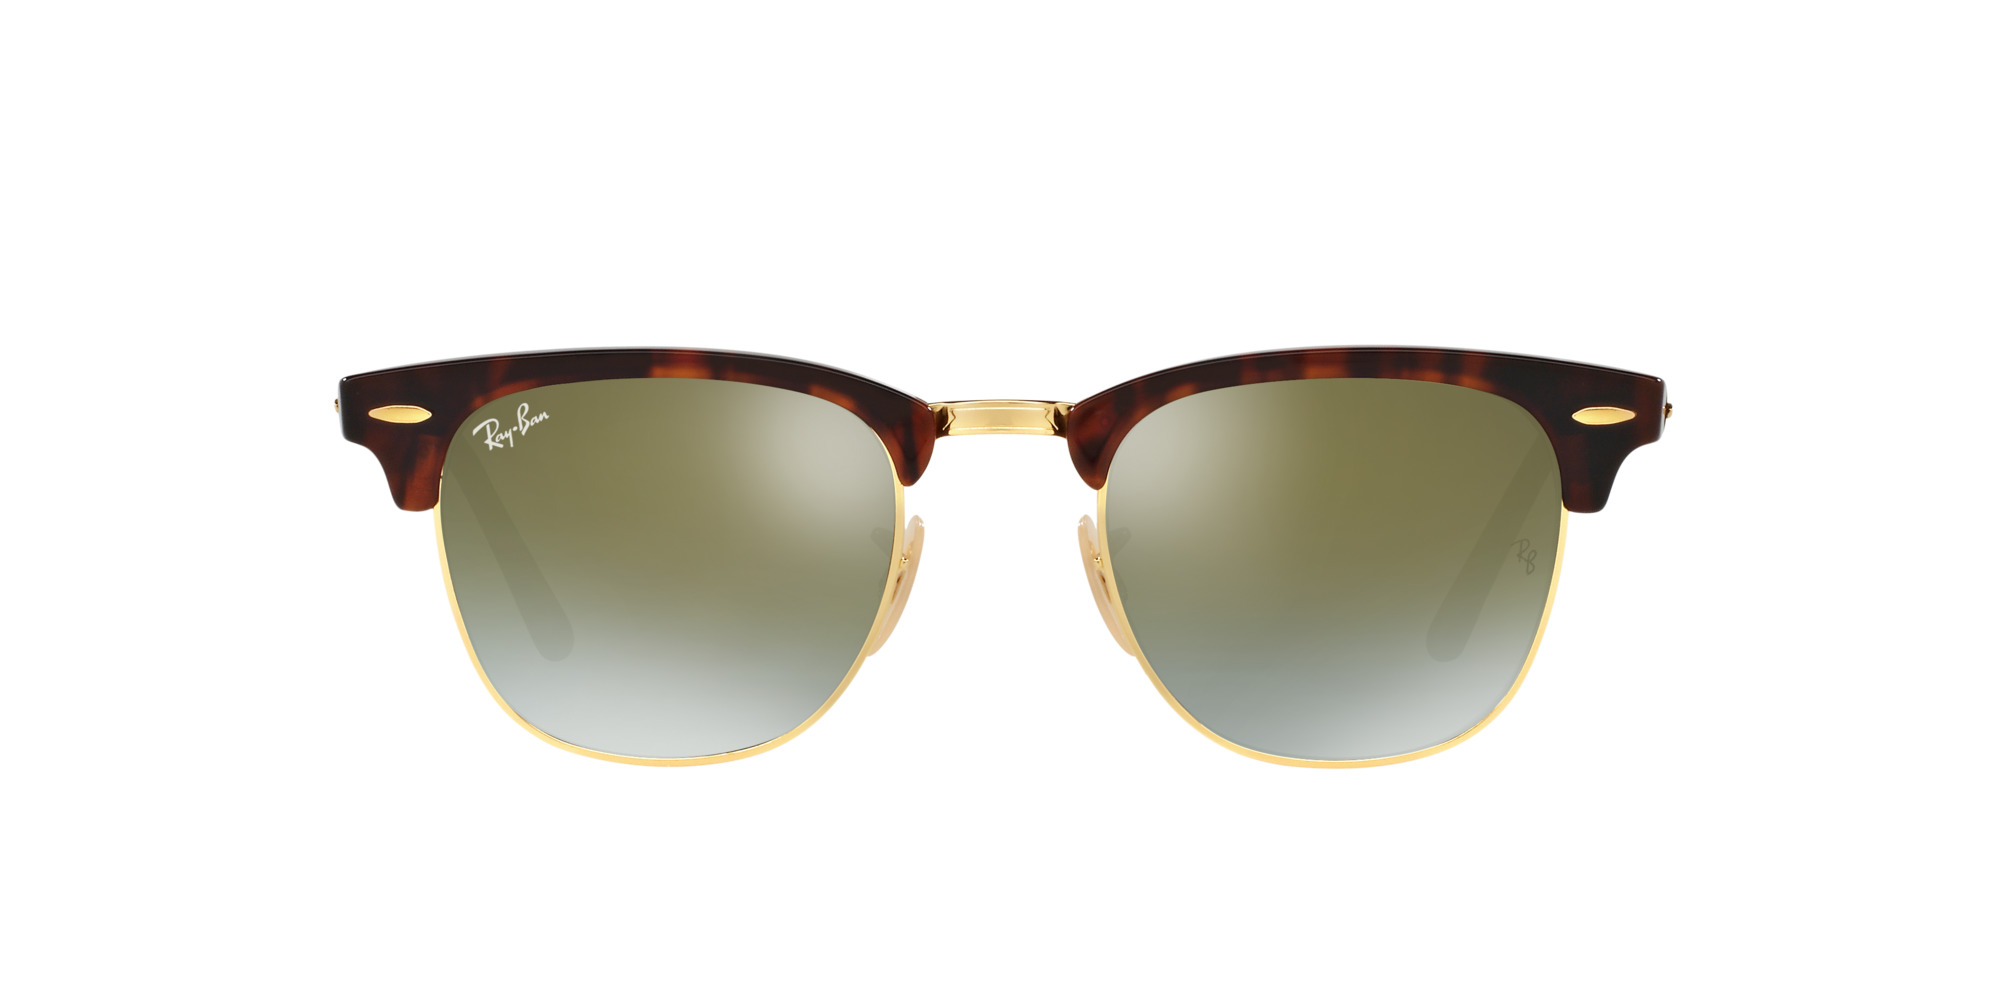 RAY-BAN CLUBMASTER RB3016 990/9J-360